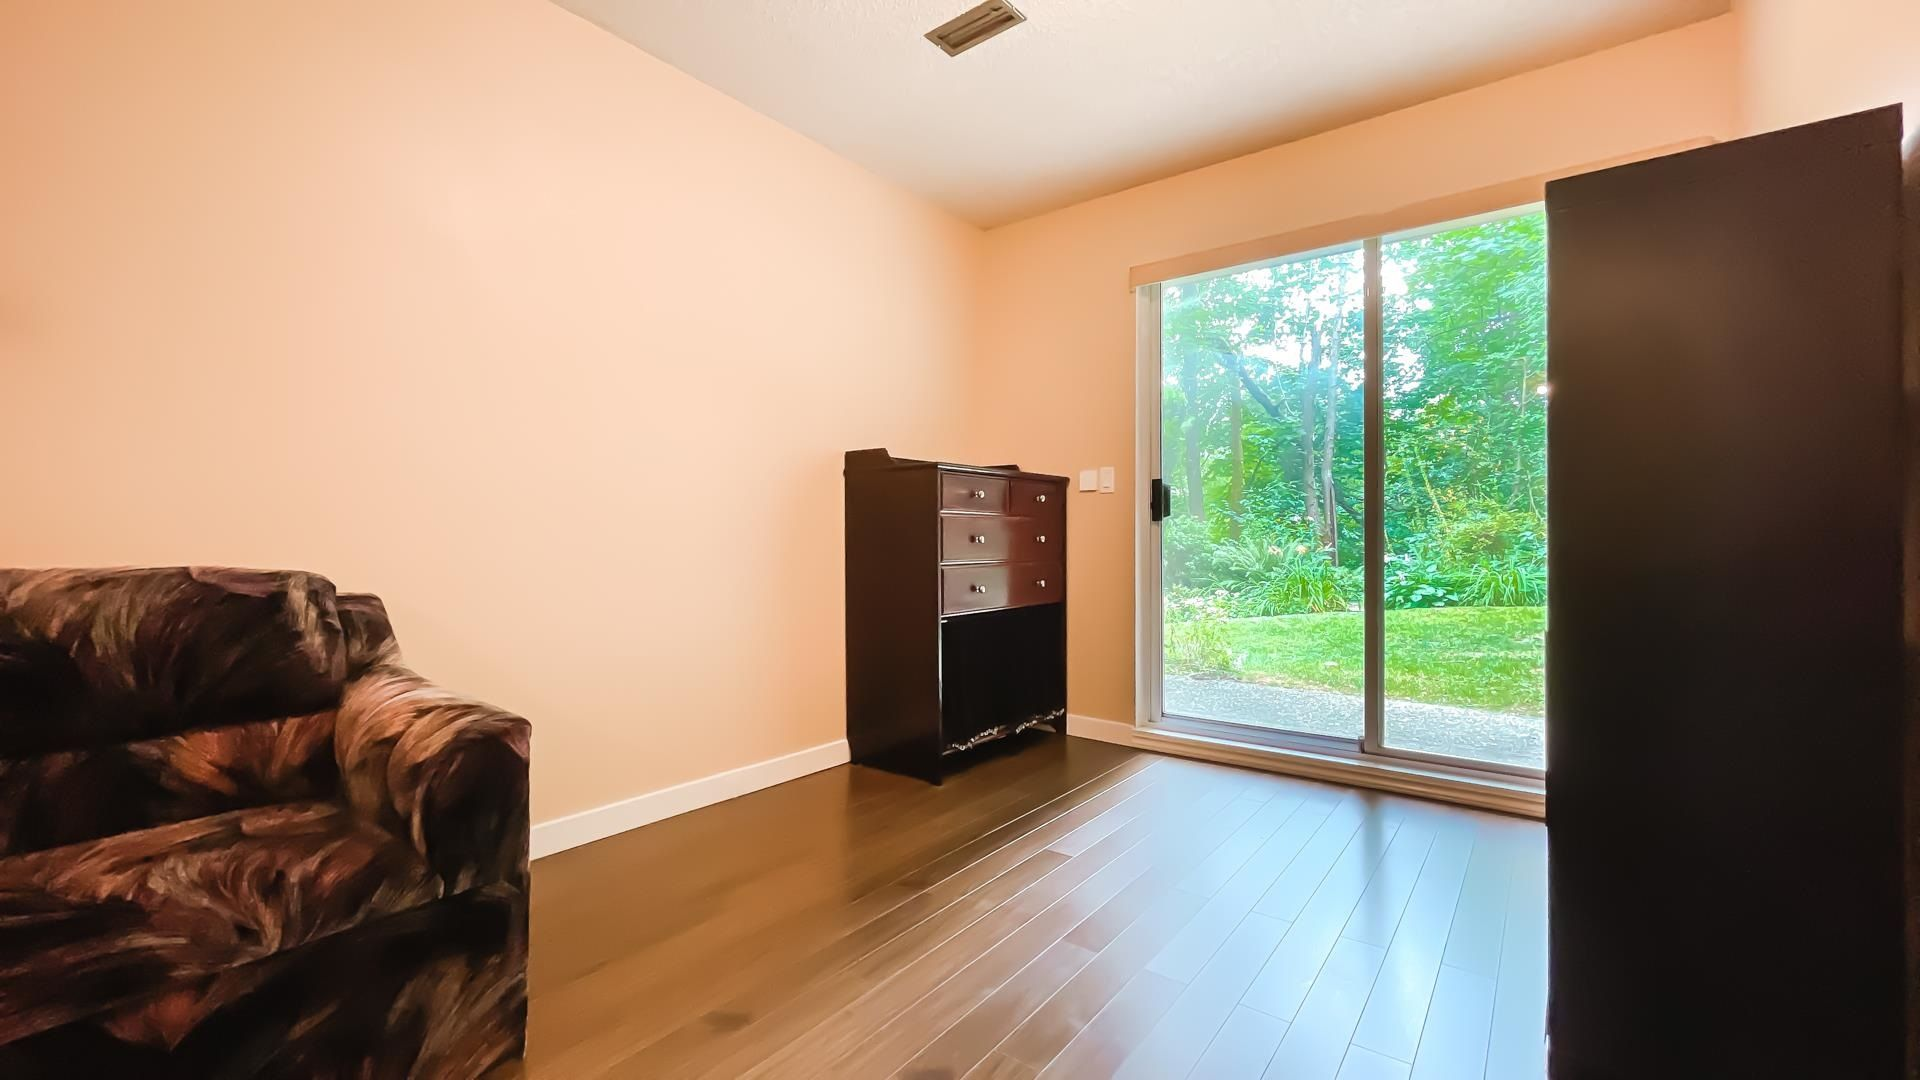 Photo 23: Photos: 66 9000 ASH GROVE CRESCENT in Burnaby: Forest Hills BN Townhouse for sale (Burnaby North)  : MLS®# R2603744